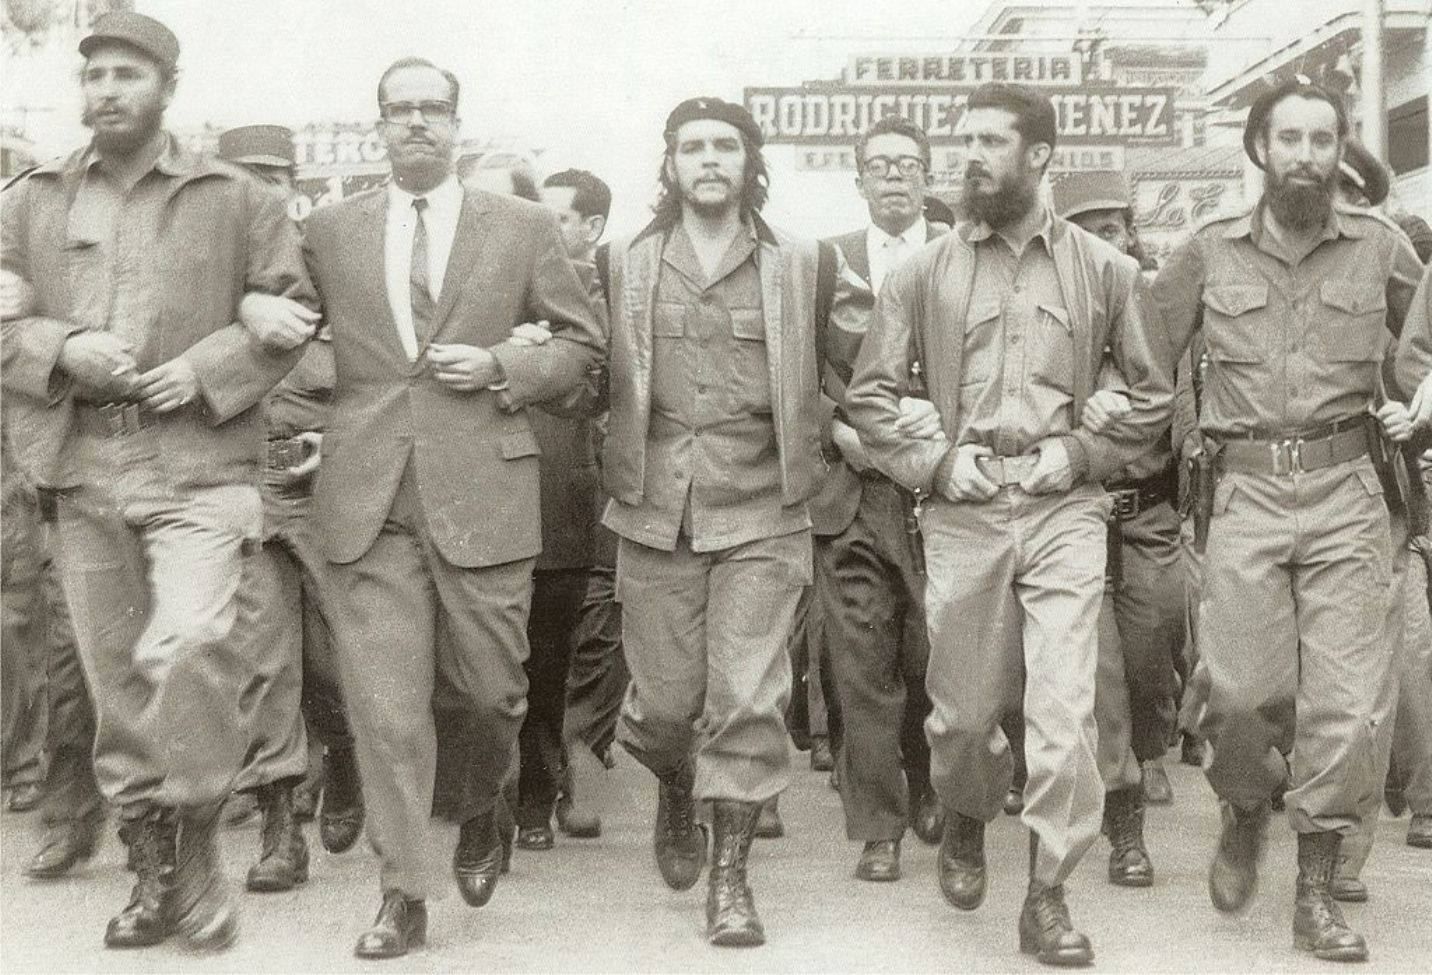 forces leading to revolution in cuba essay Whater were some causes and effects of the cuban revolution of fidel castro left for cuba in forces tried bloody repression to retain.